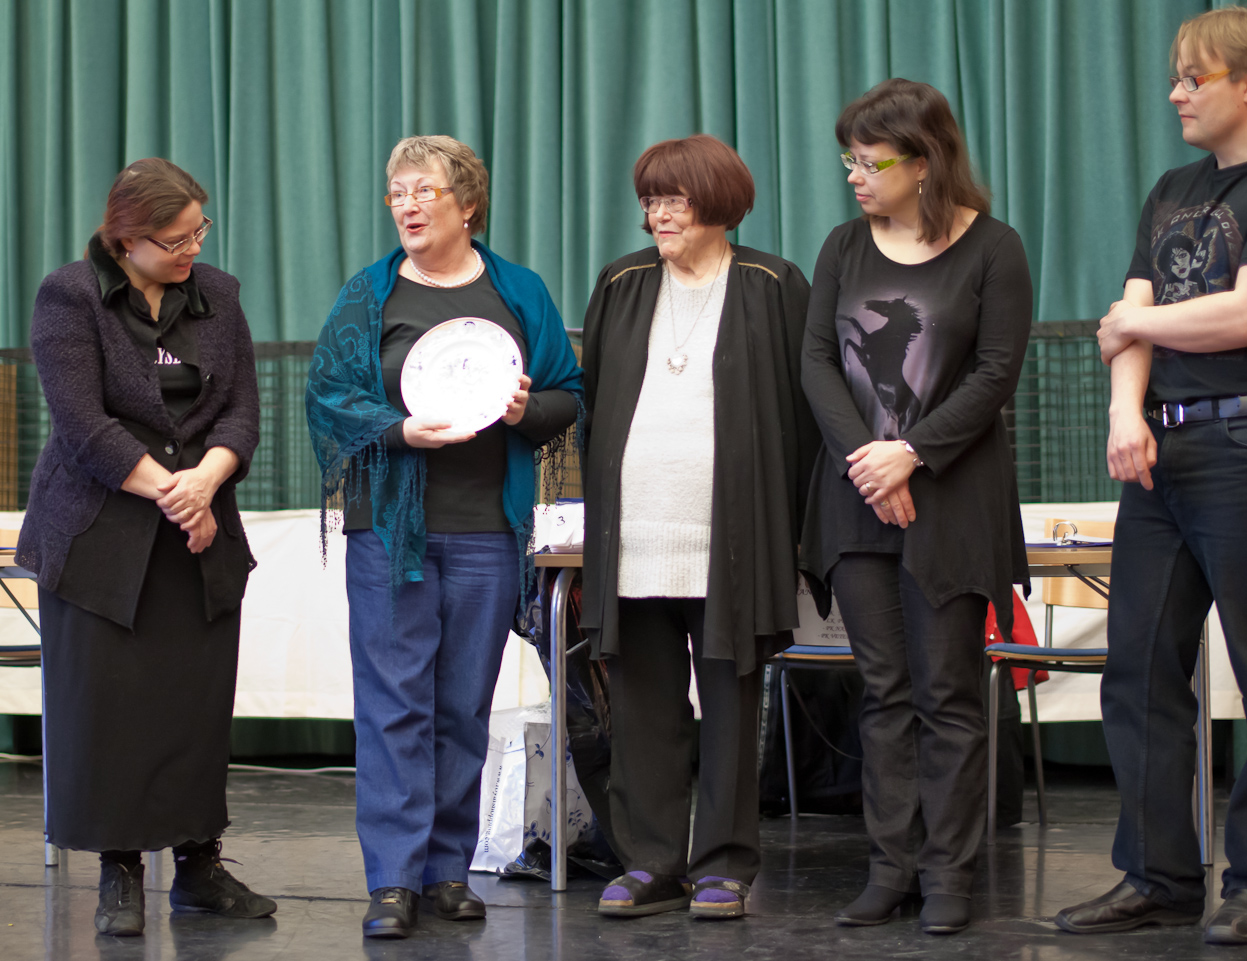 presenting the plate, photo 165006, 2010-12-05